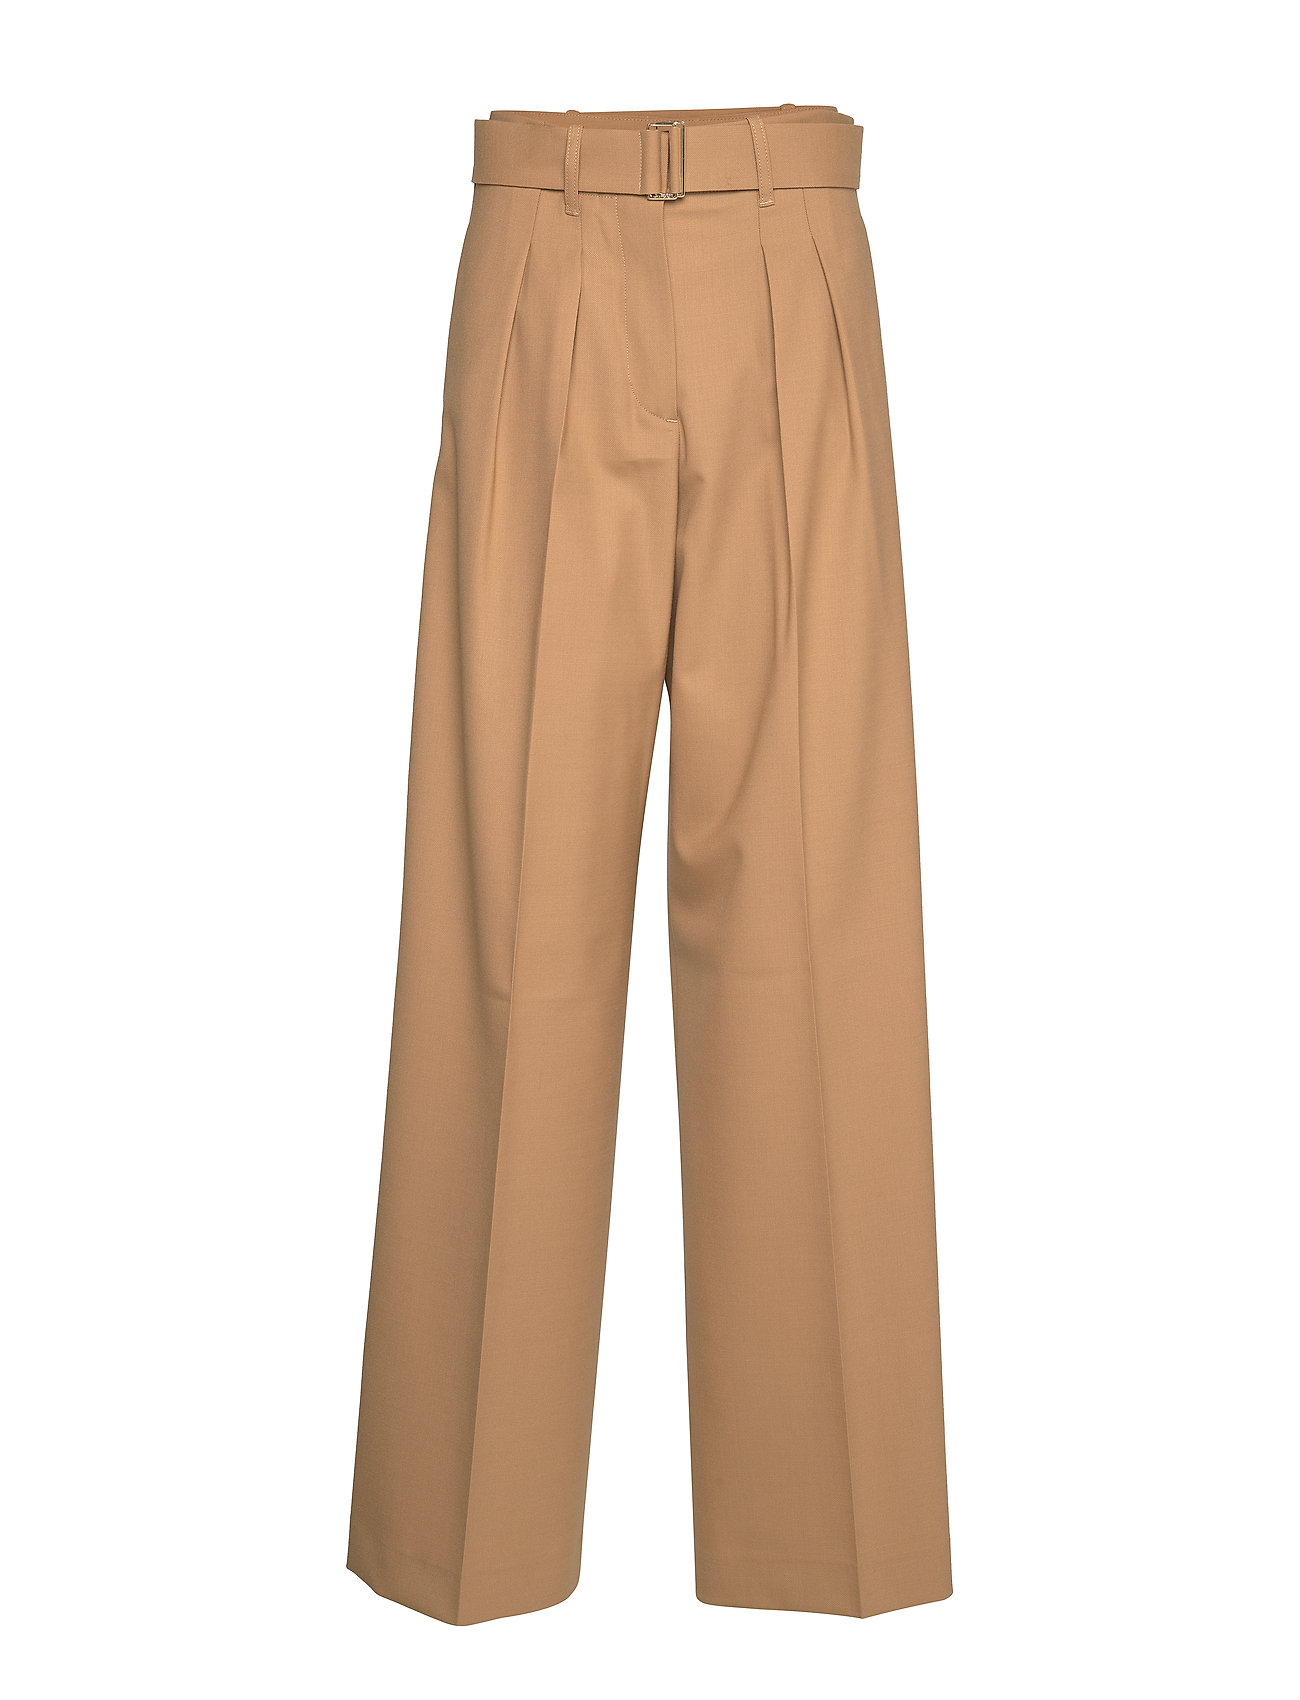 Hilfiger Collection HCW WIDE LEG CHINO, - CORNSTALK